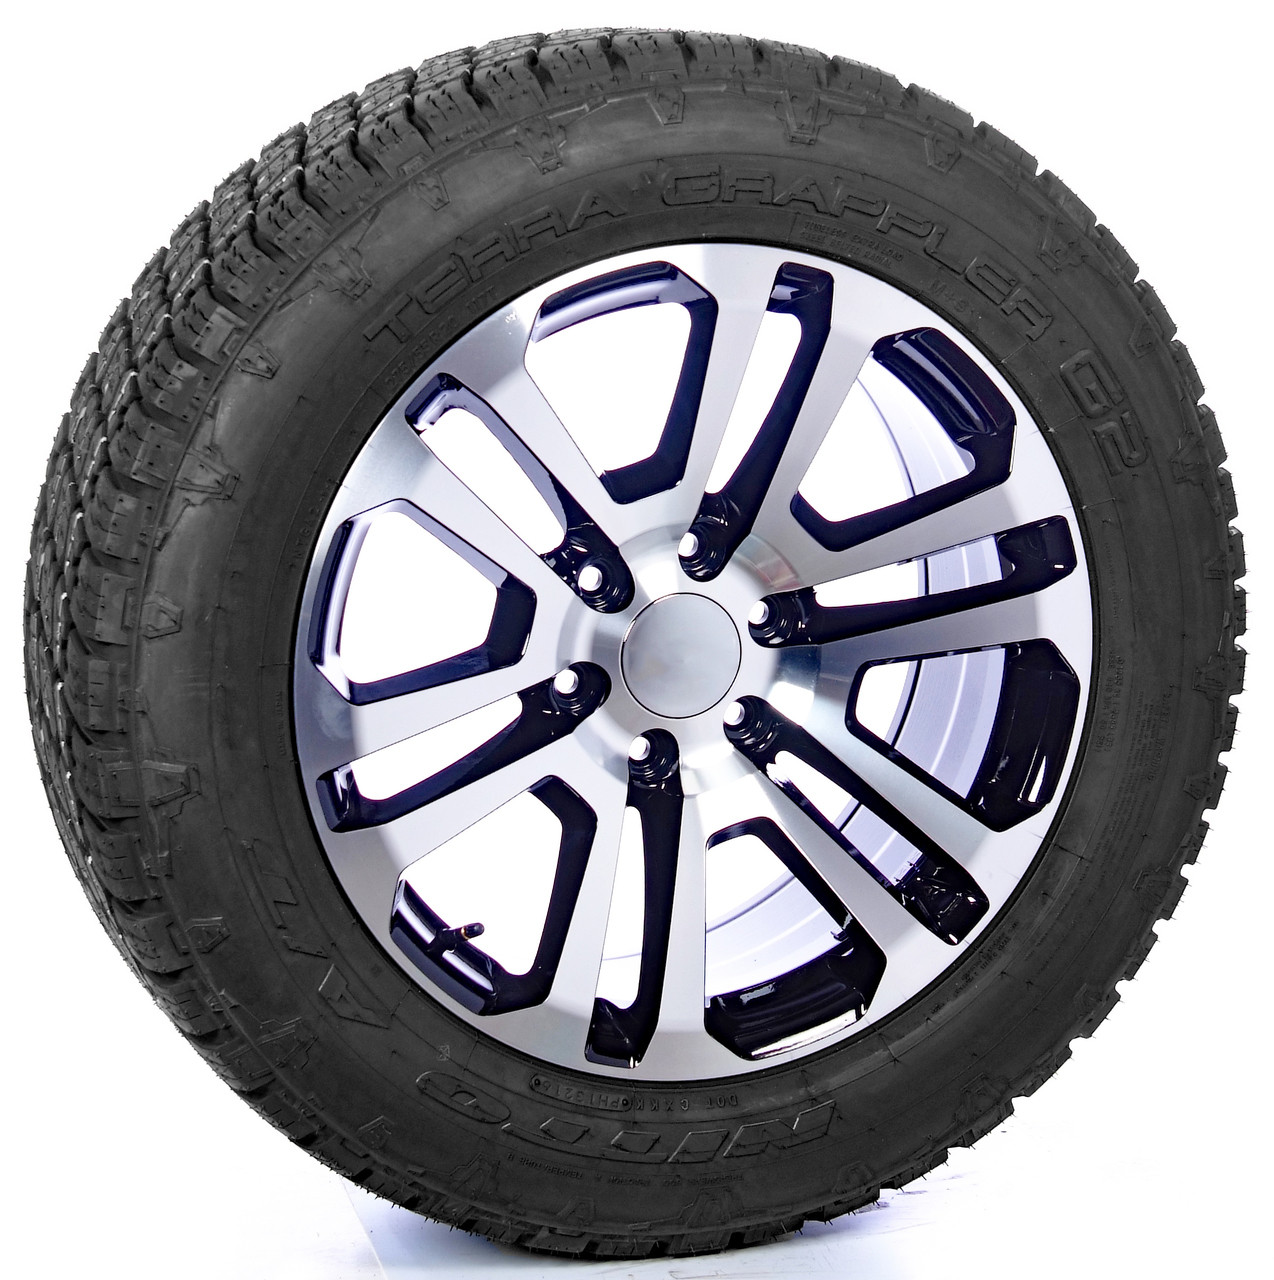 """Black and Machine 20"""" Split Spoke Wheels with Nitto A/T Tires for Chevy Silverado, Tahoe, Suburban - New Set of 4"""